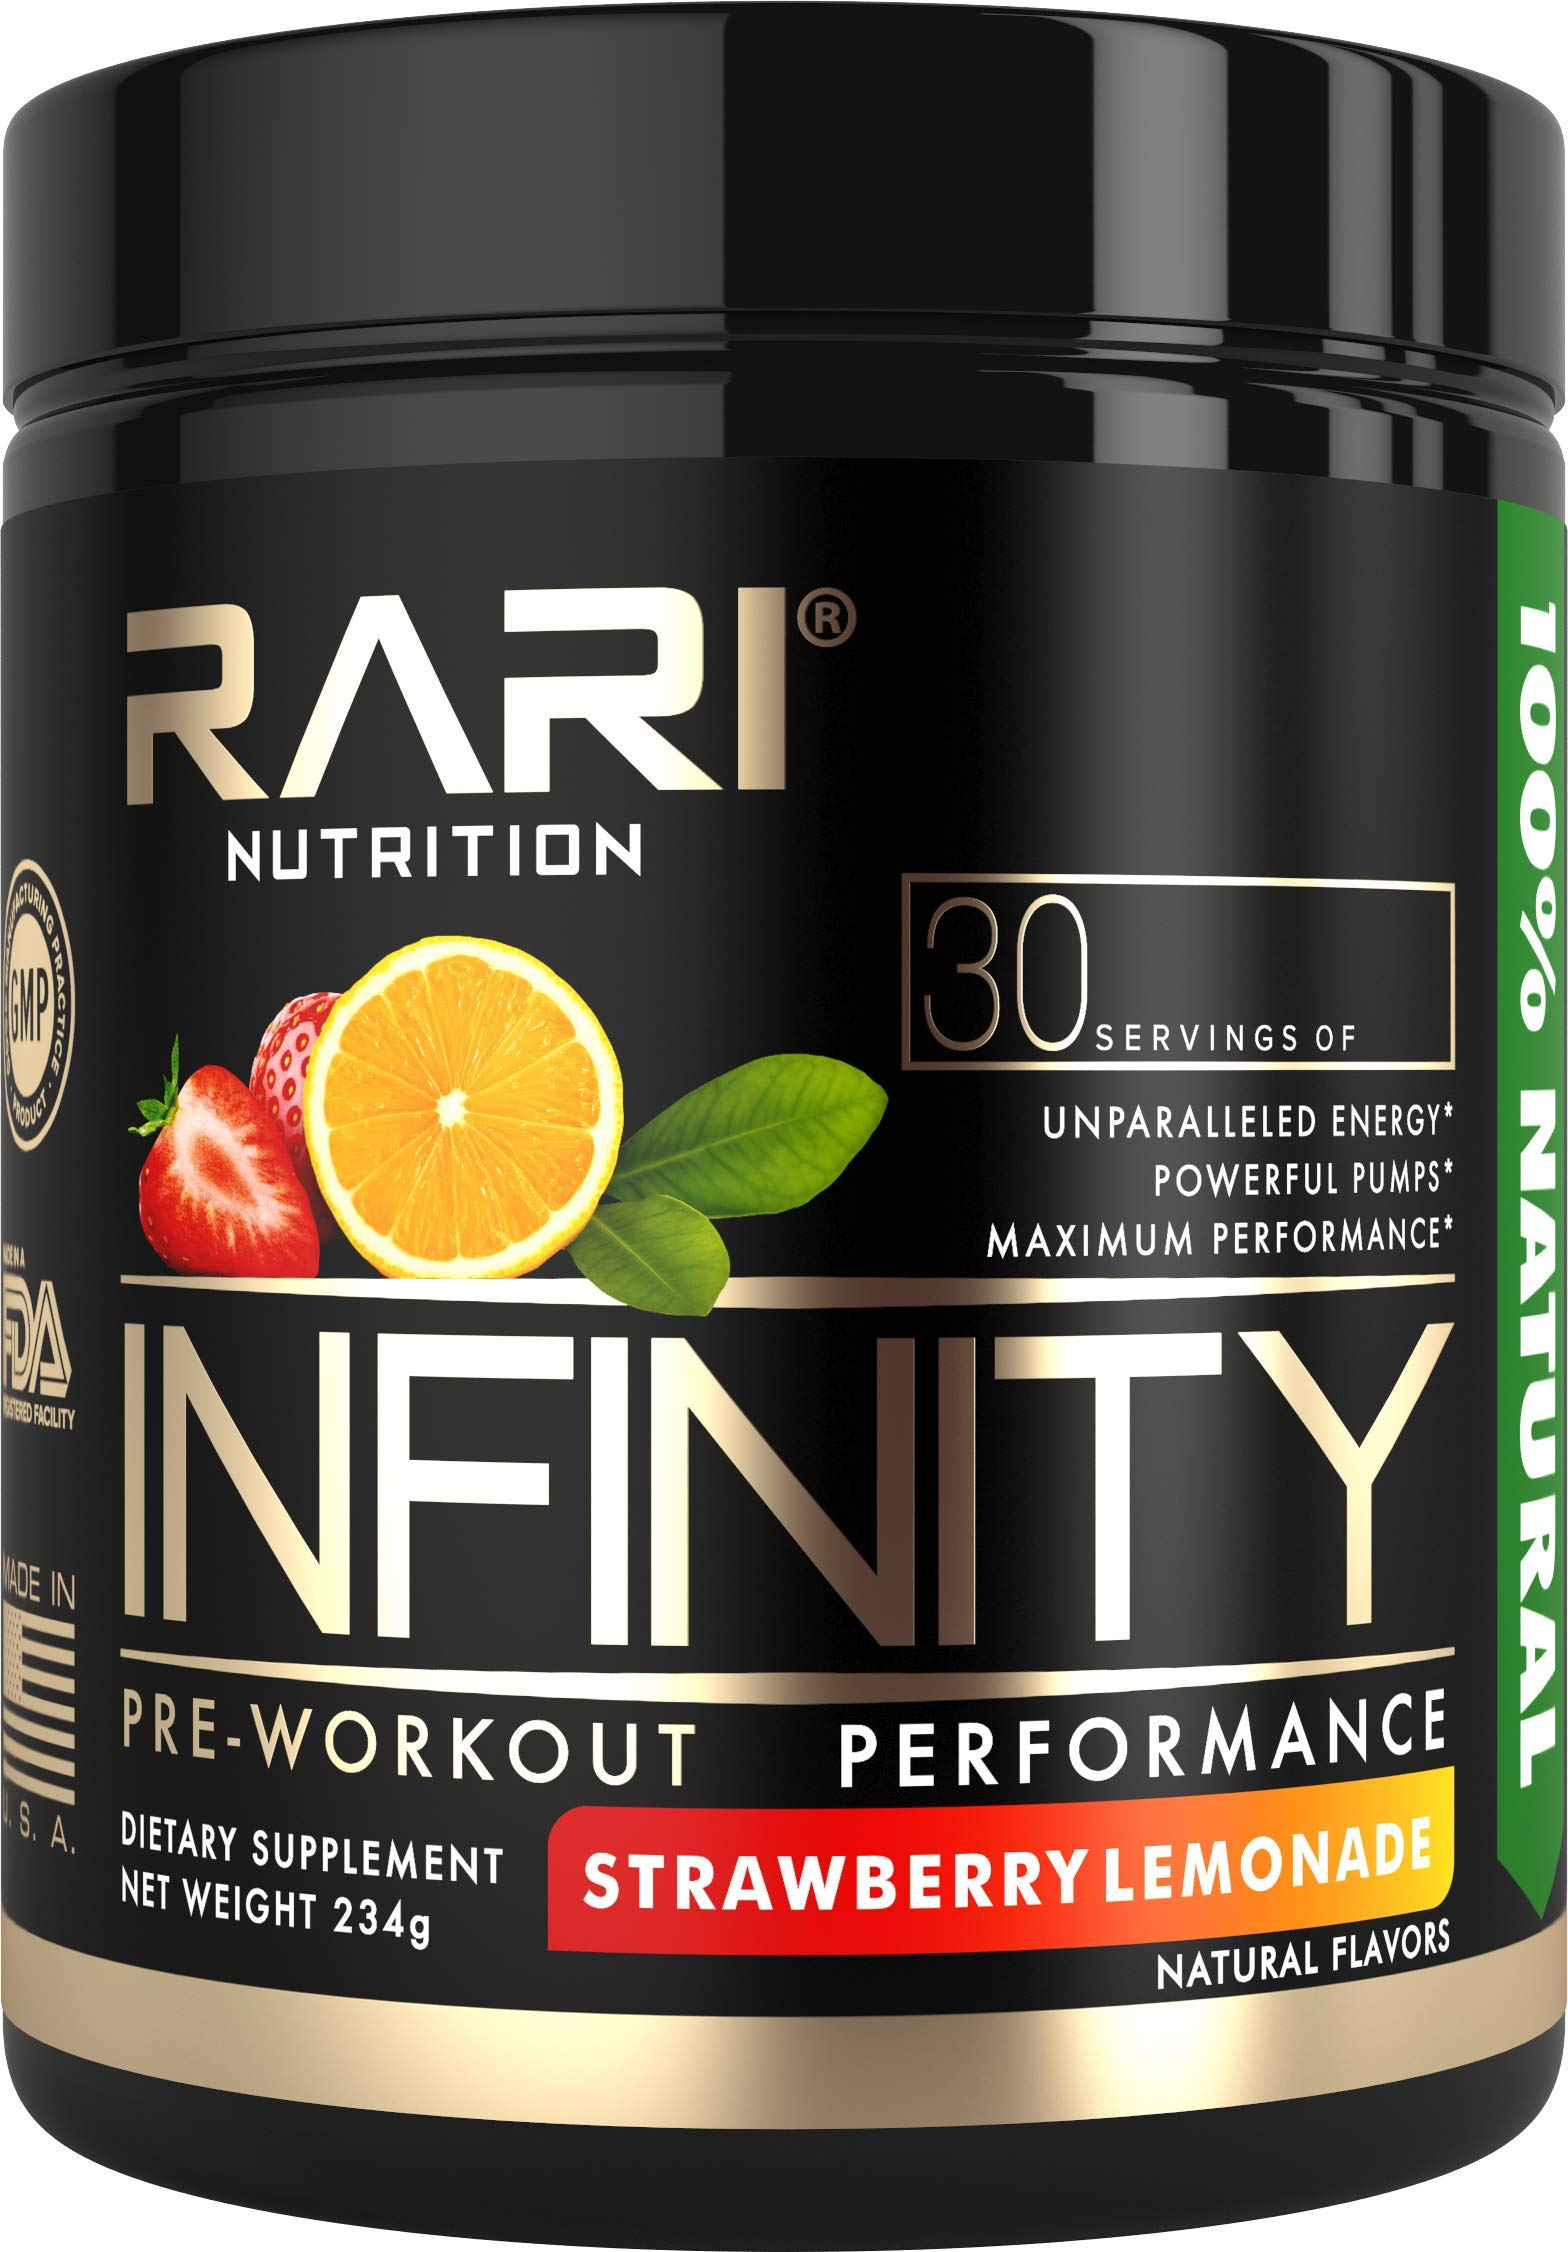 RARI Nutrition - INFINITY Preworkout - 100% Natural Pre Workout Powder - Keto and Vegan Friendly - Energy, Focus, and Performance - Men and Women - No Creatine - 30 Servings (Strawberry Lemonade) by RARI Nutrition